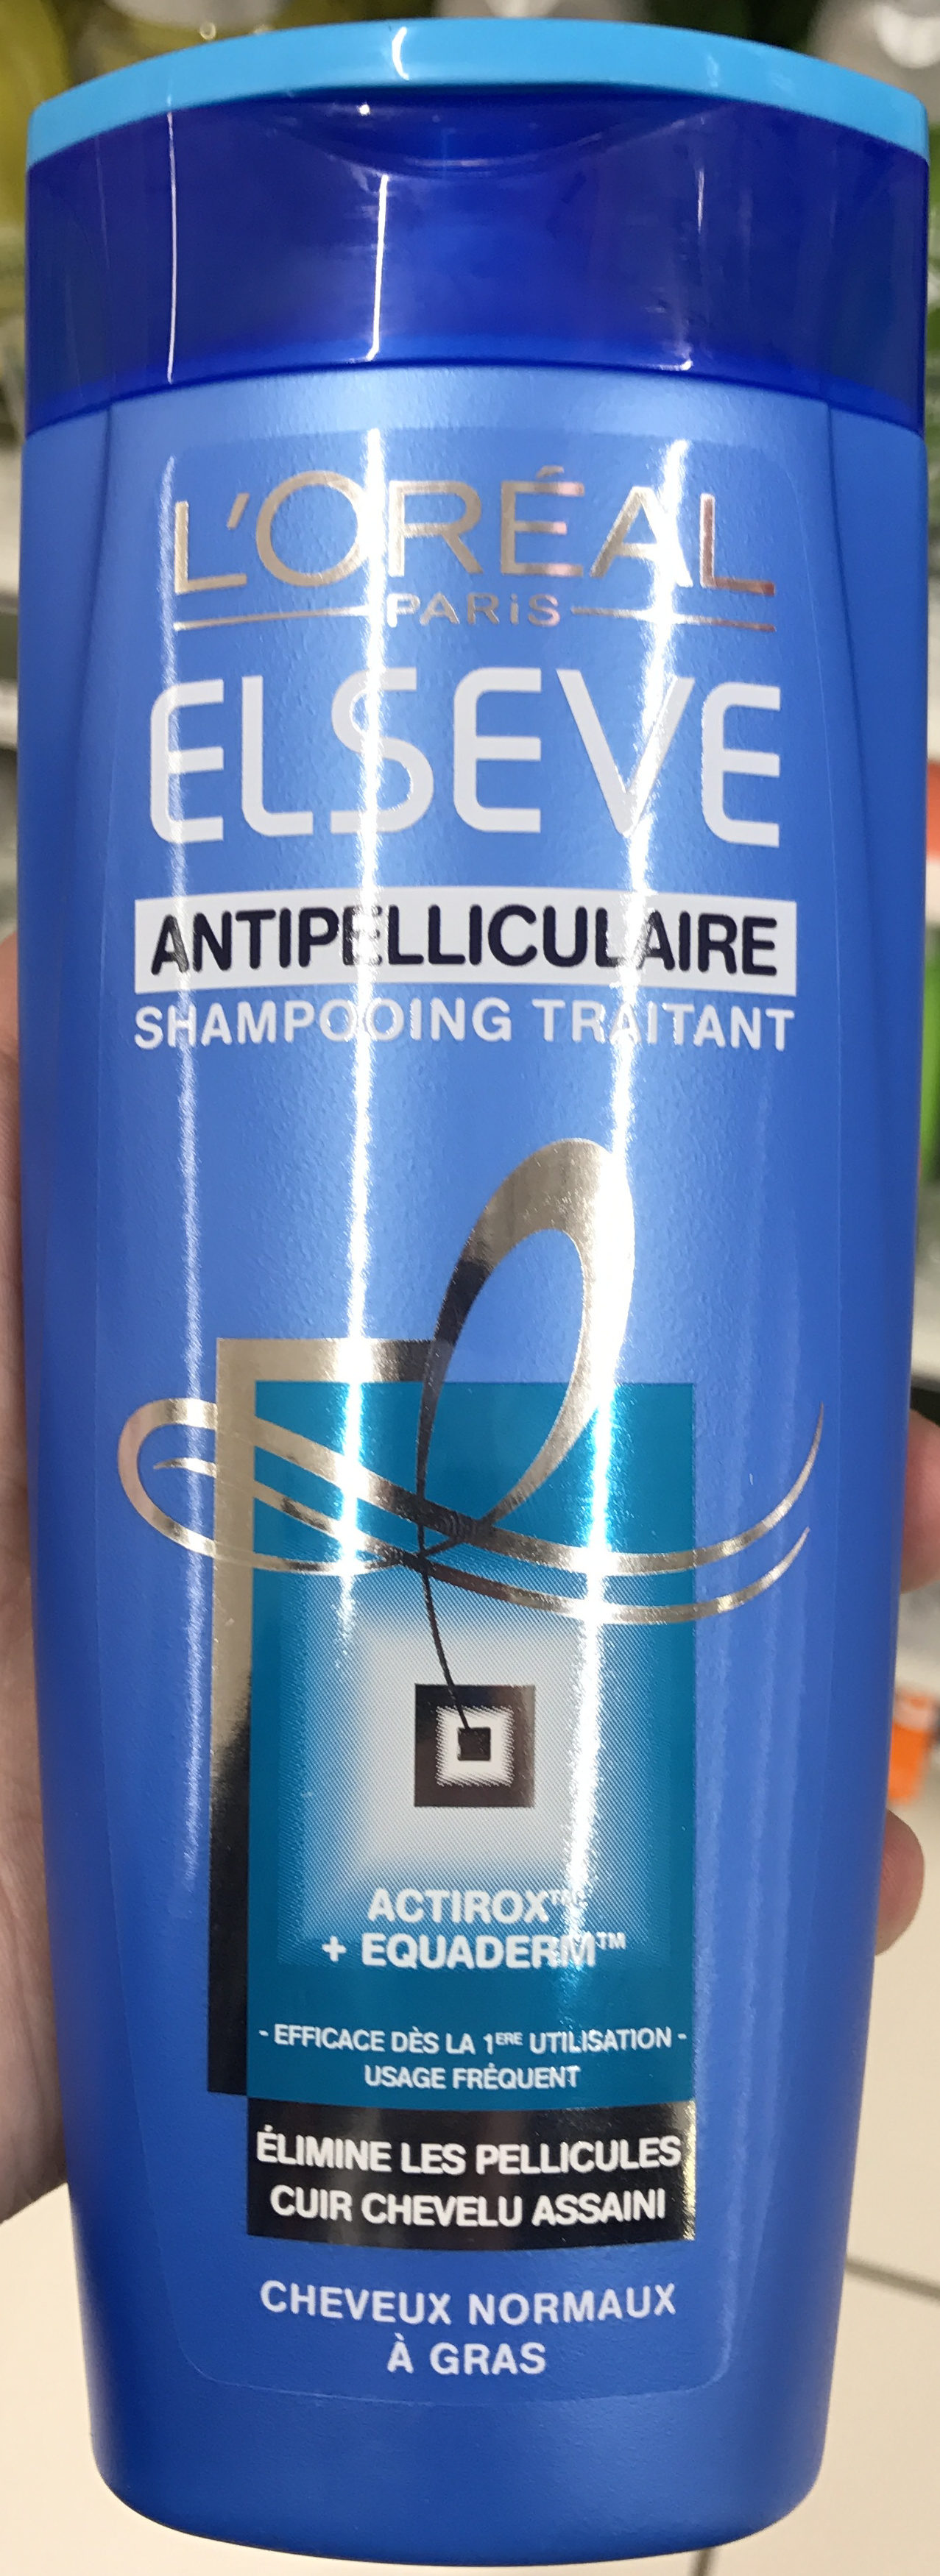 Elseve Antipelliculaire shampooing traitant - Product